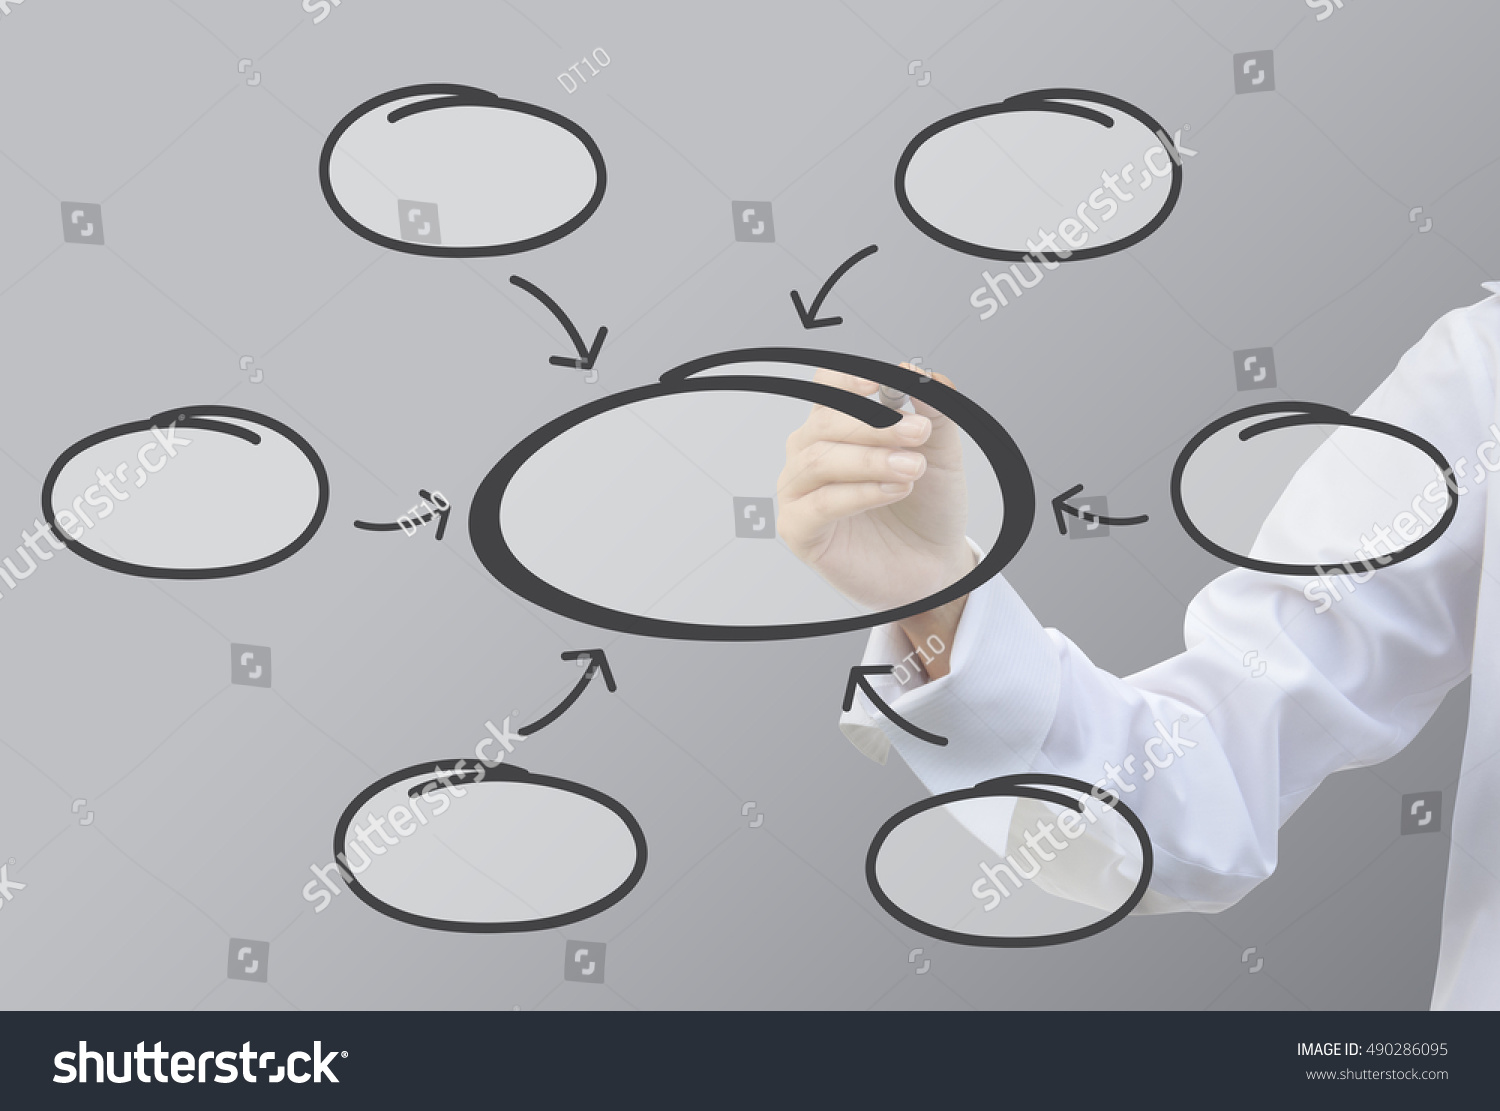 hight resolution of business writing relation of bubble diagram concept set6